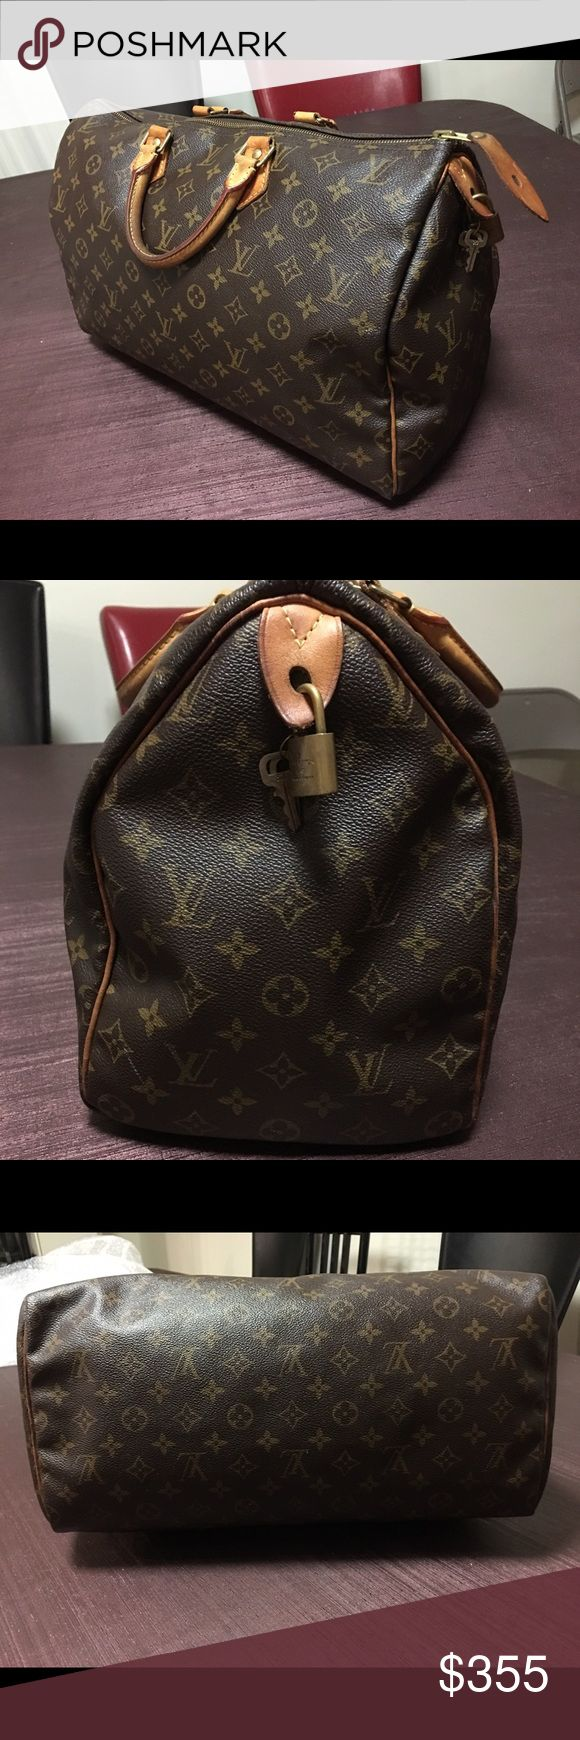 Louis Vuitton Monogram Speedy 40 Nice large Speedy in good condition. Minor scuffs at the edges. The canvas is in excellent condition, and the zipper runs smoothly. Comes with lock and key. All lowball offers will be ignored!!! Louis Vuitton Bags Satchels